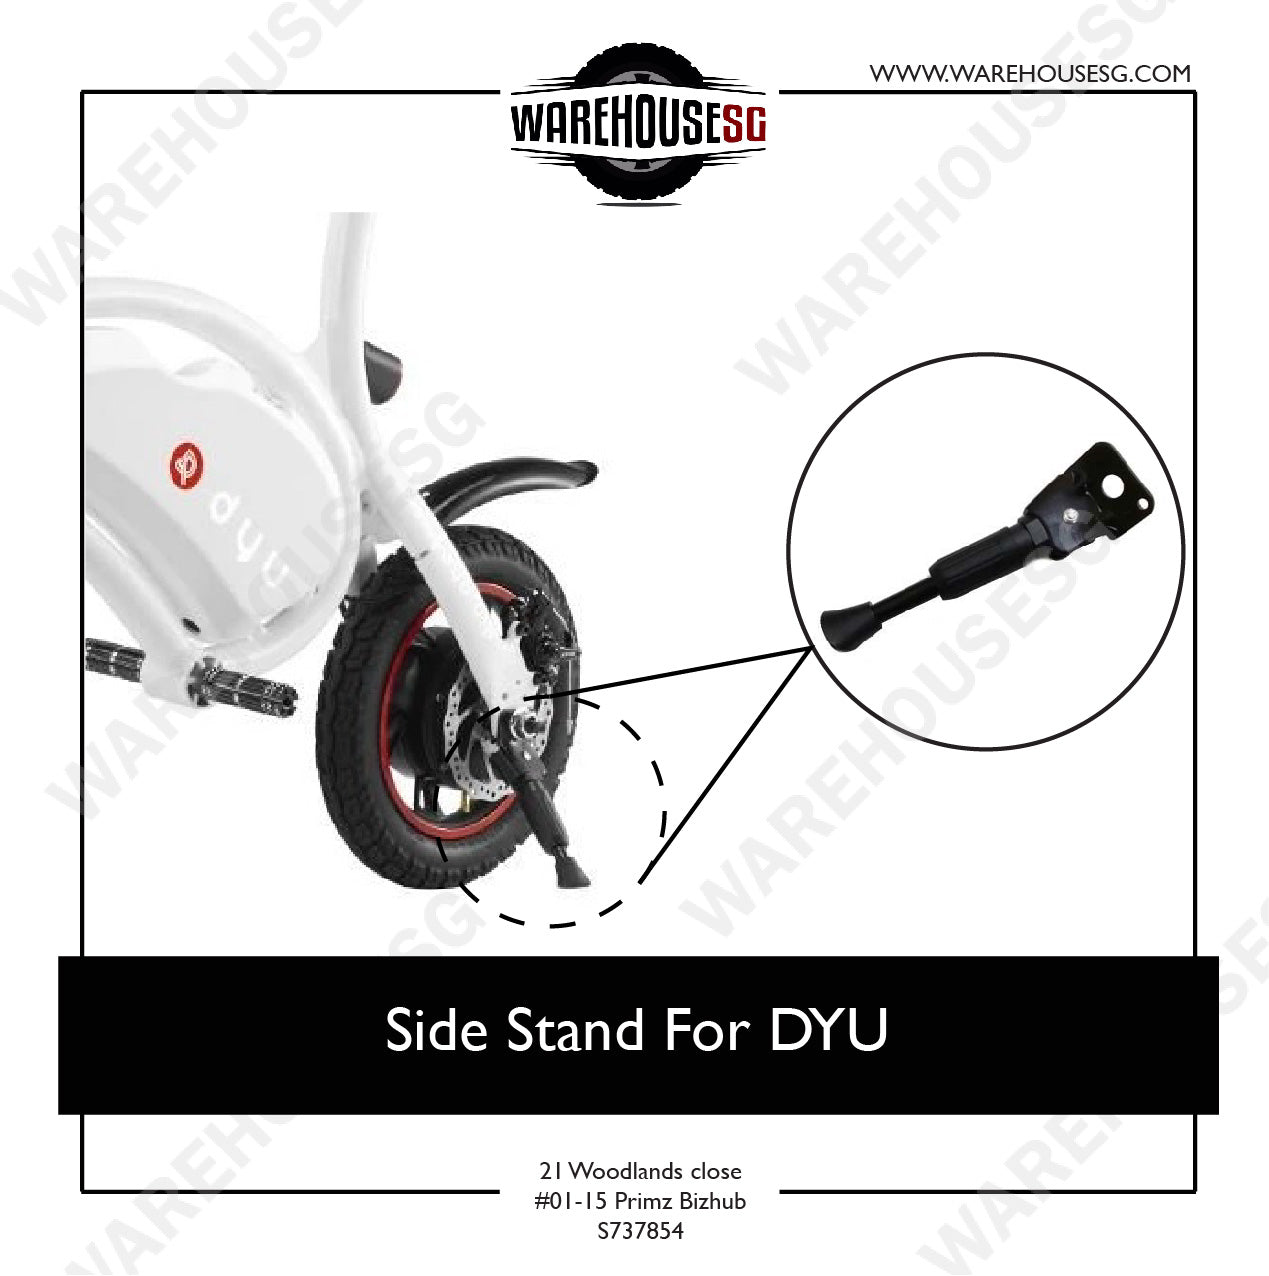 Side Stand For DYU